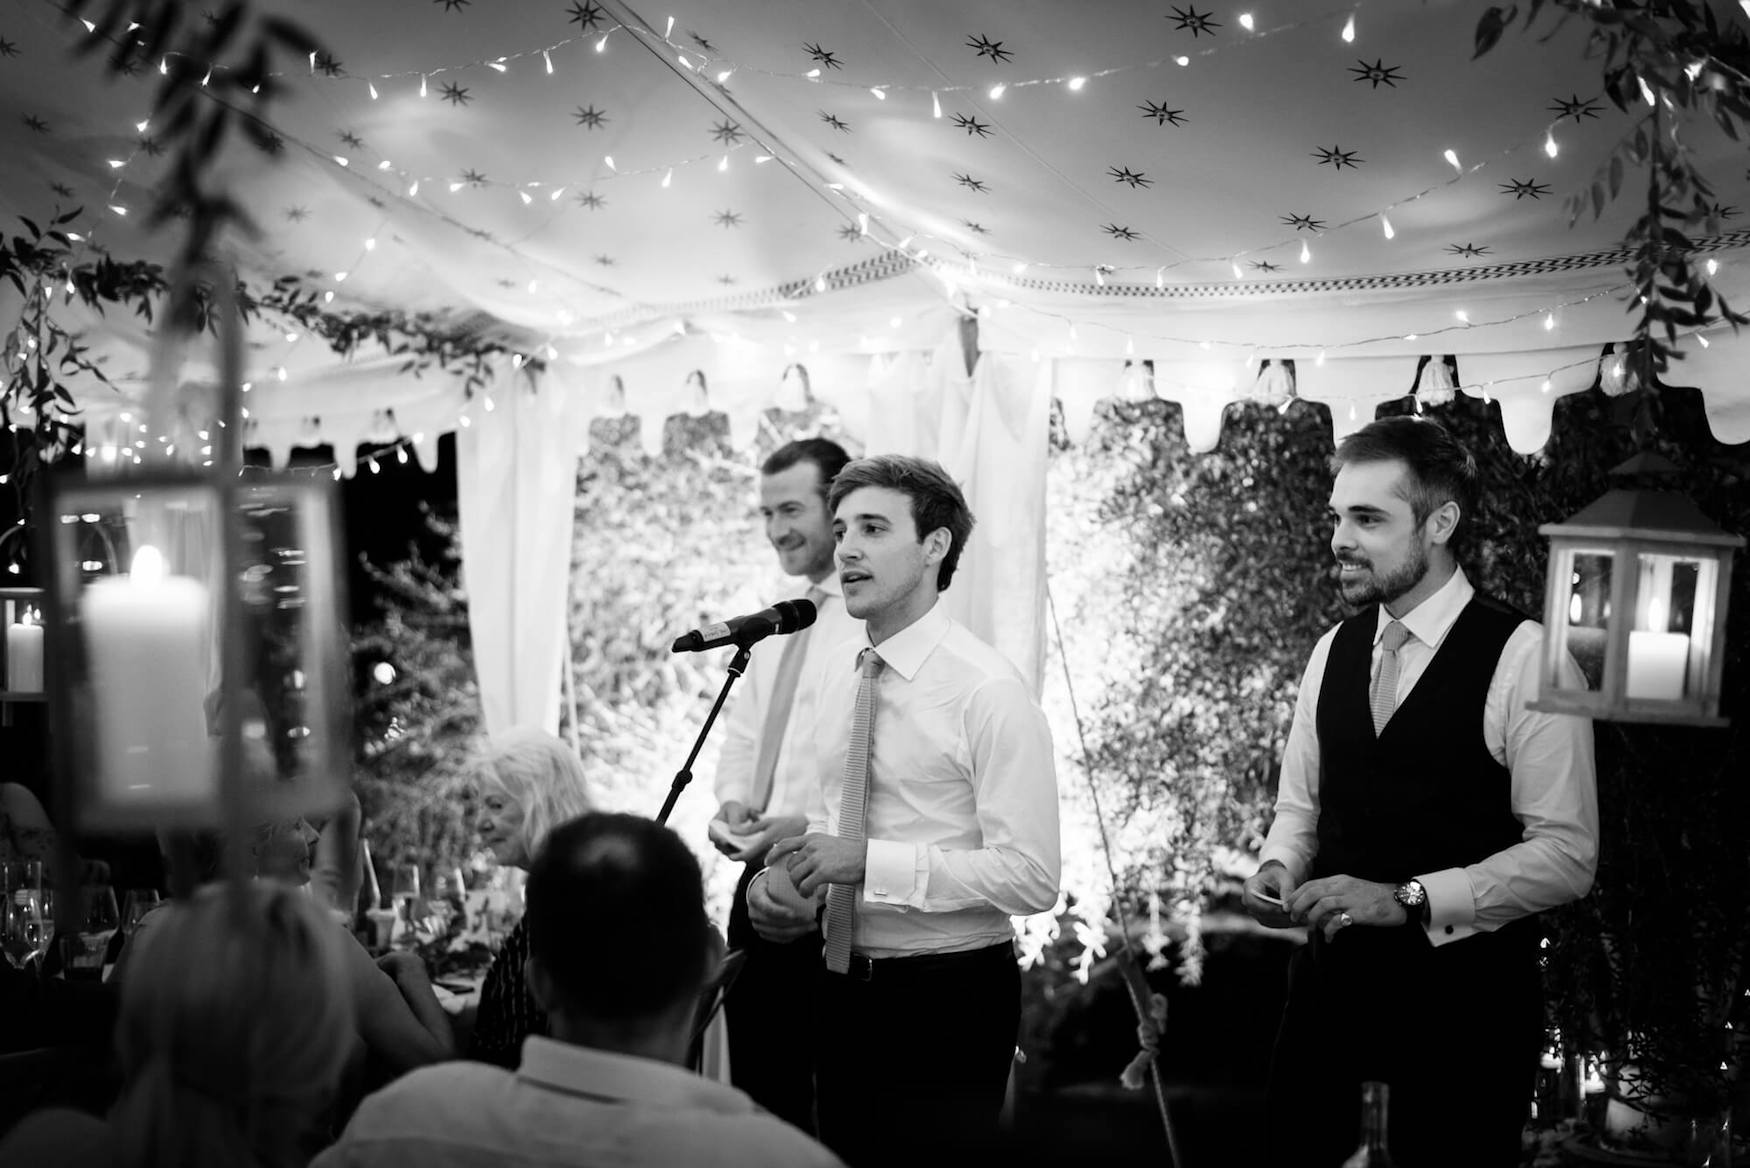 best men speeches dinner counrty wedding